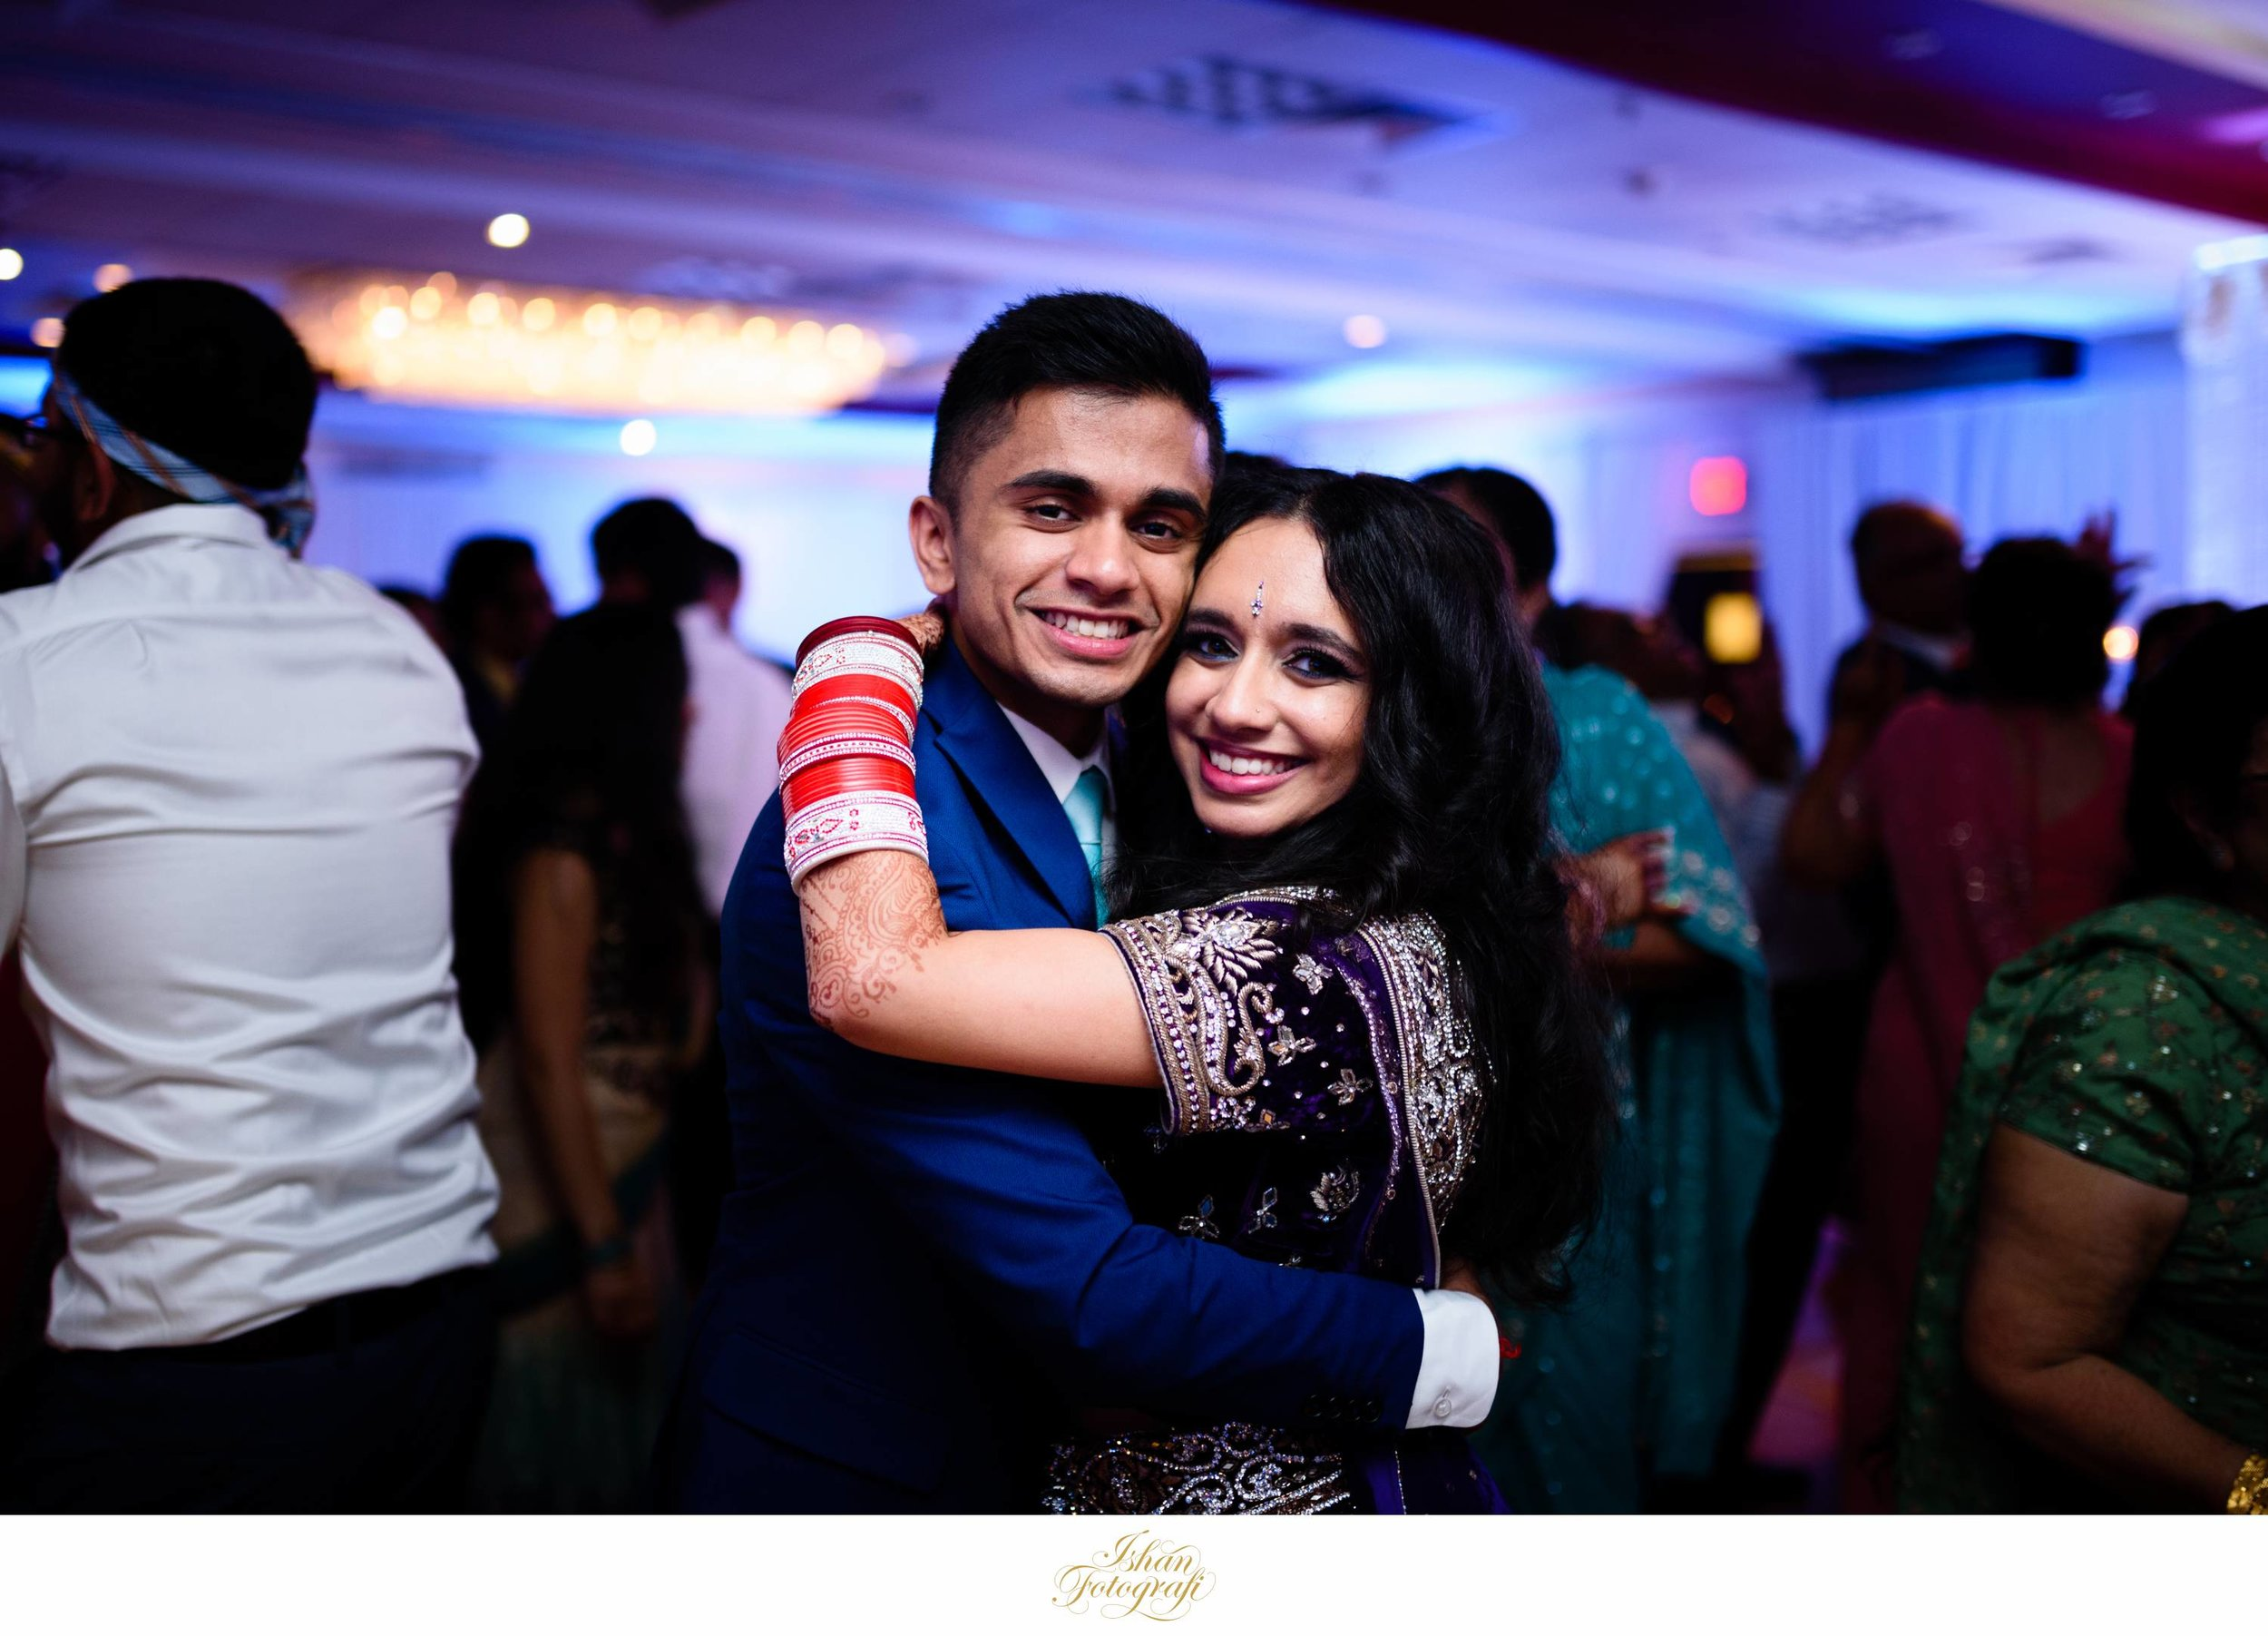 Bride and brother dancing at an indian wedding reception at the Park Savoy in Florham Park, New Jersey.